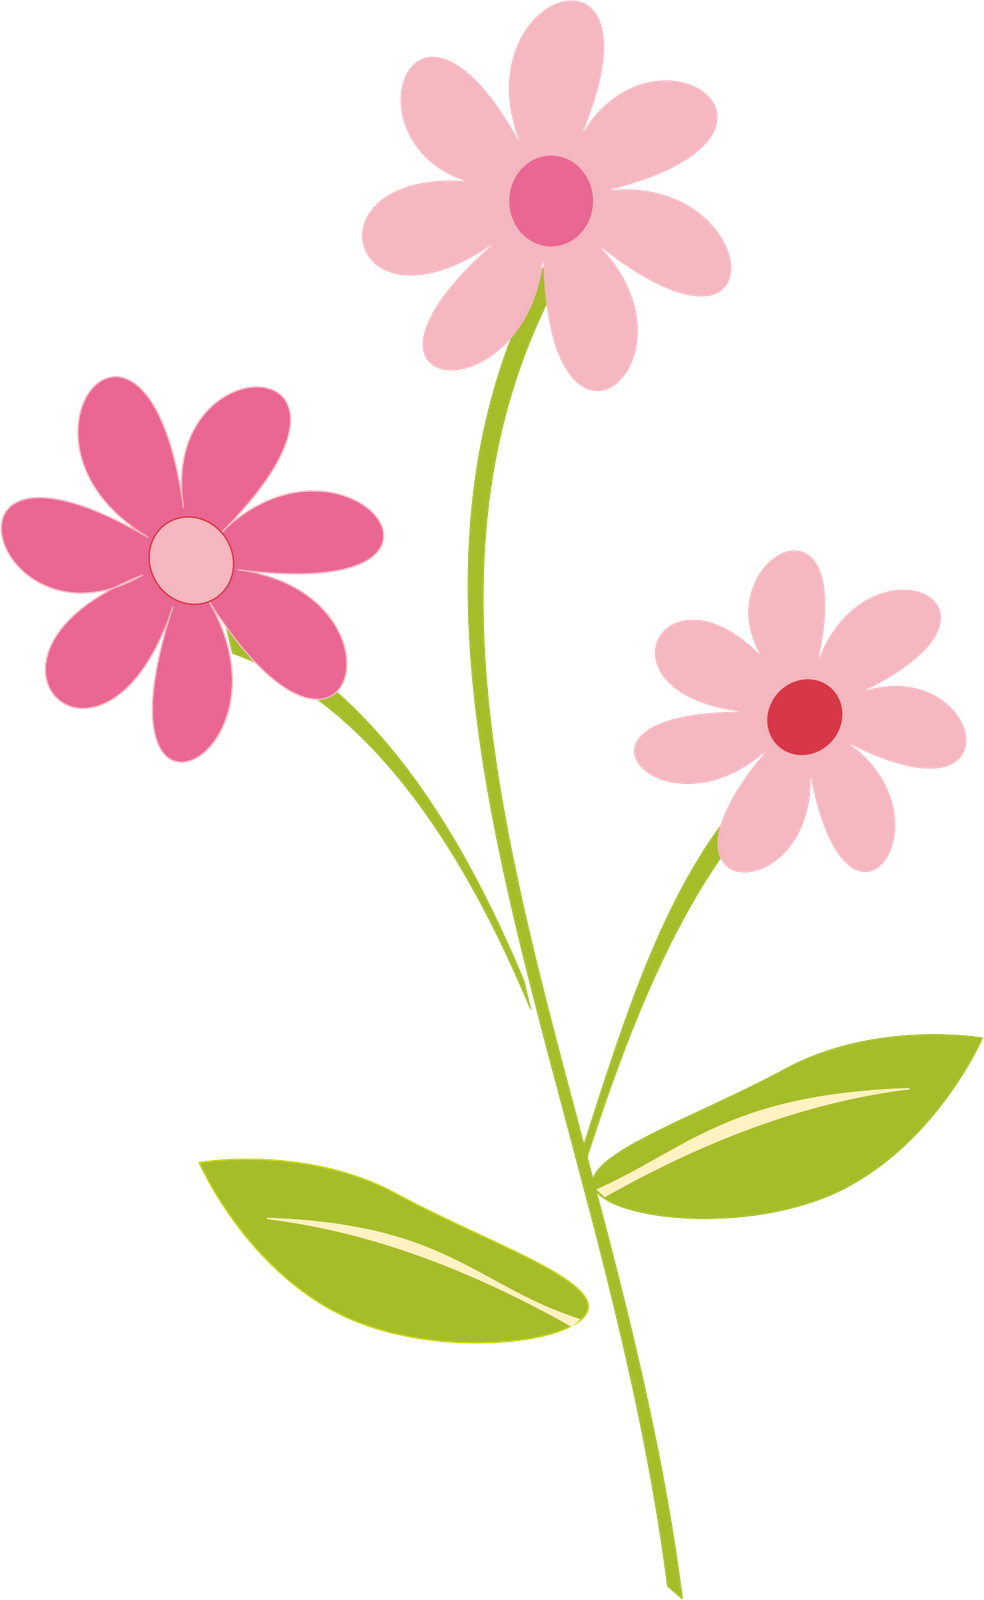 Spring flower clipart png. Svg royalty free techflourish